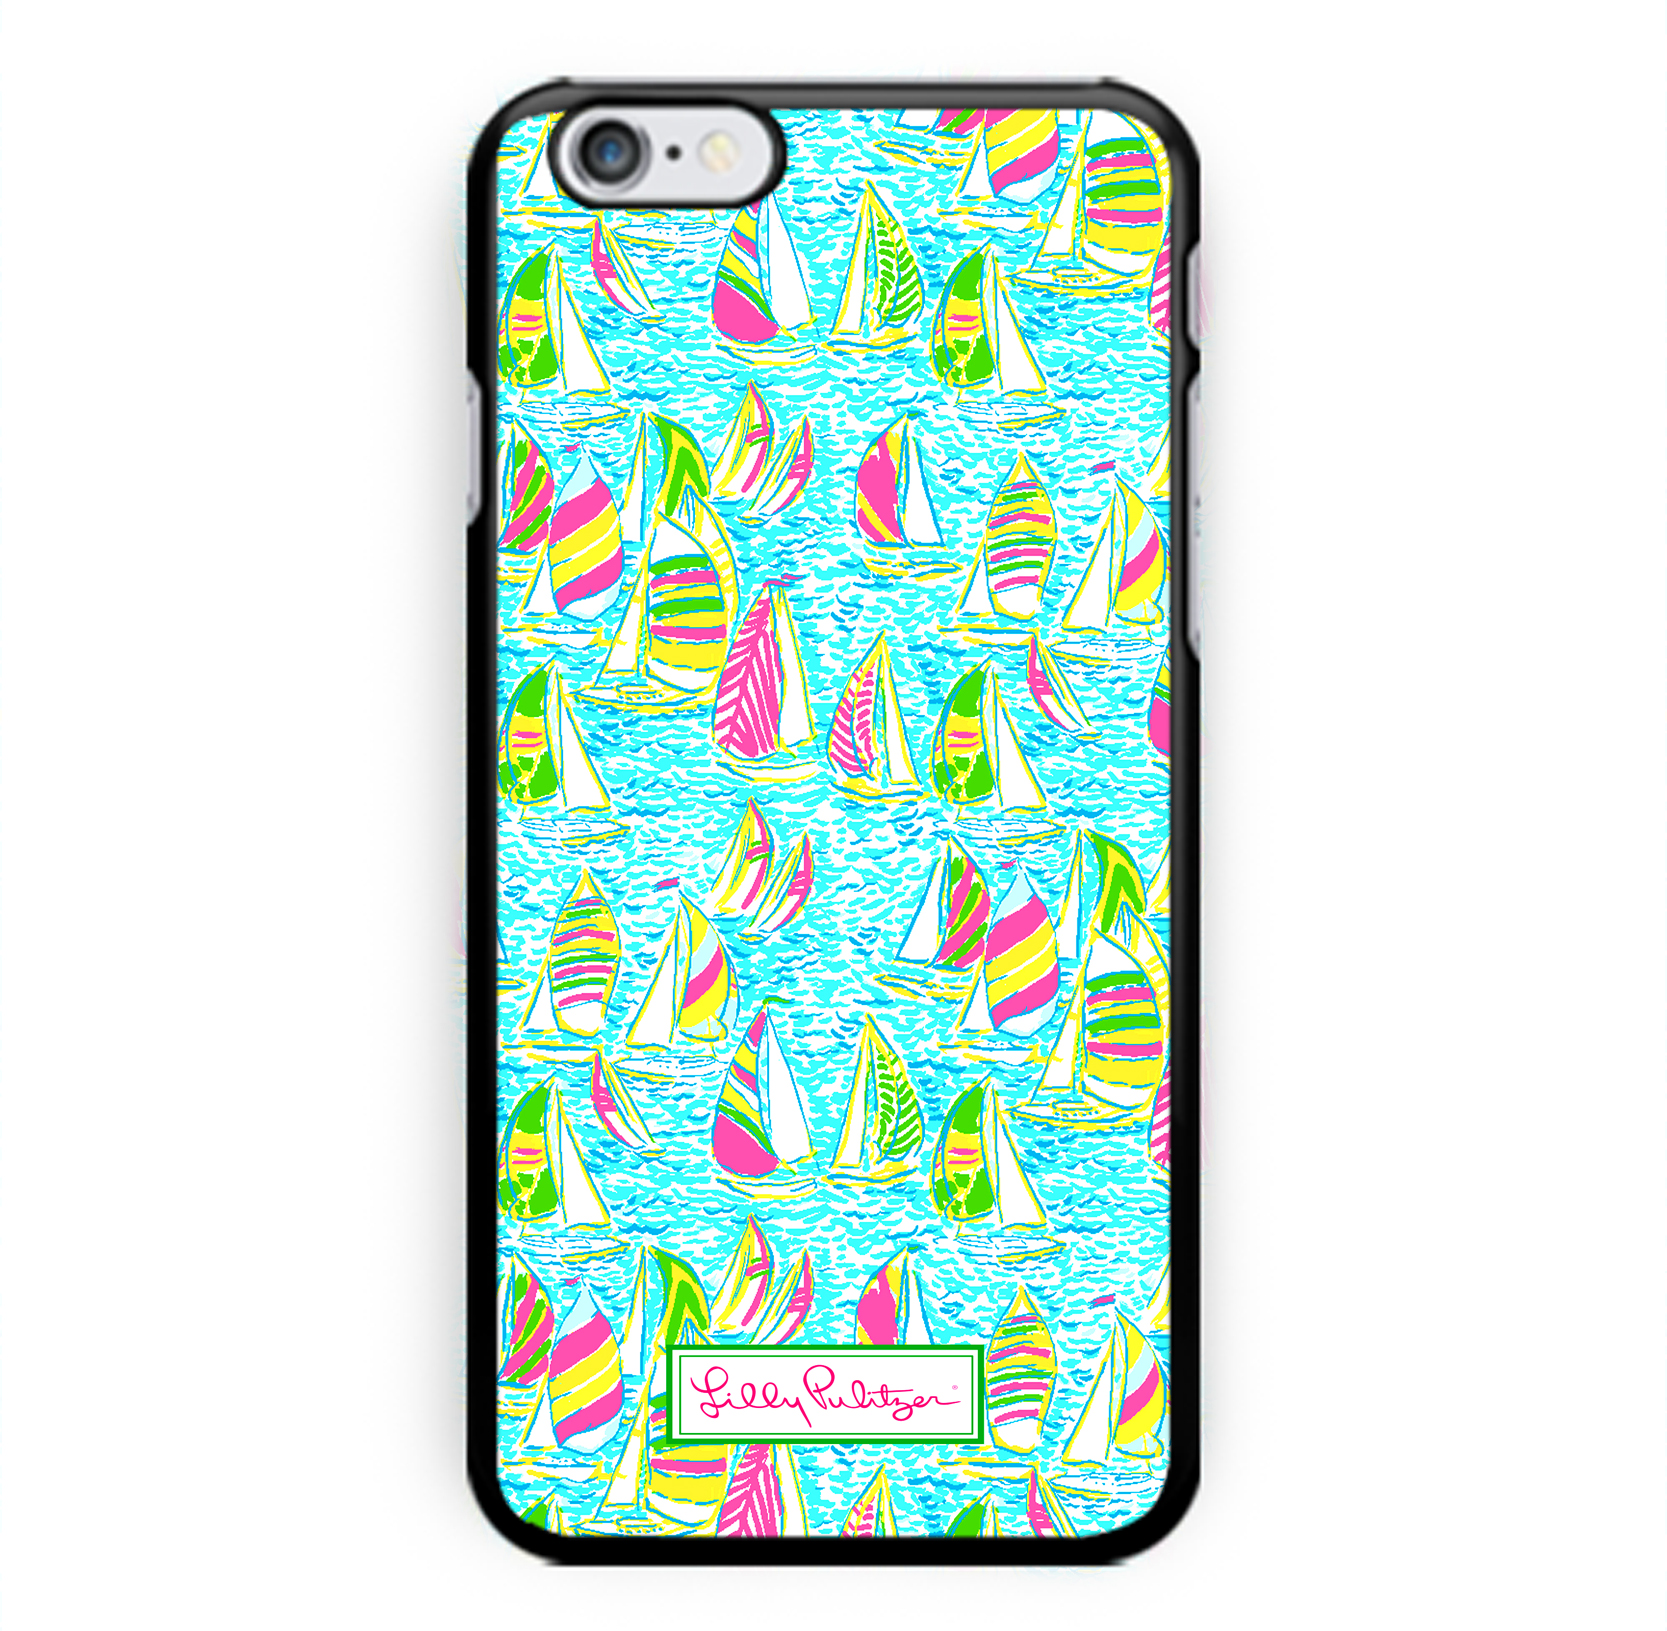 d833ade89e0ef New Hot Custom Lilly pulitzer Summer Surfing Print On Hard Case For iPhone  6/6s